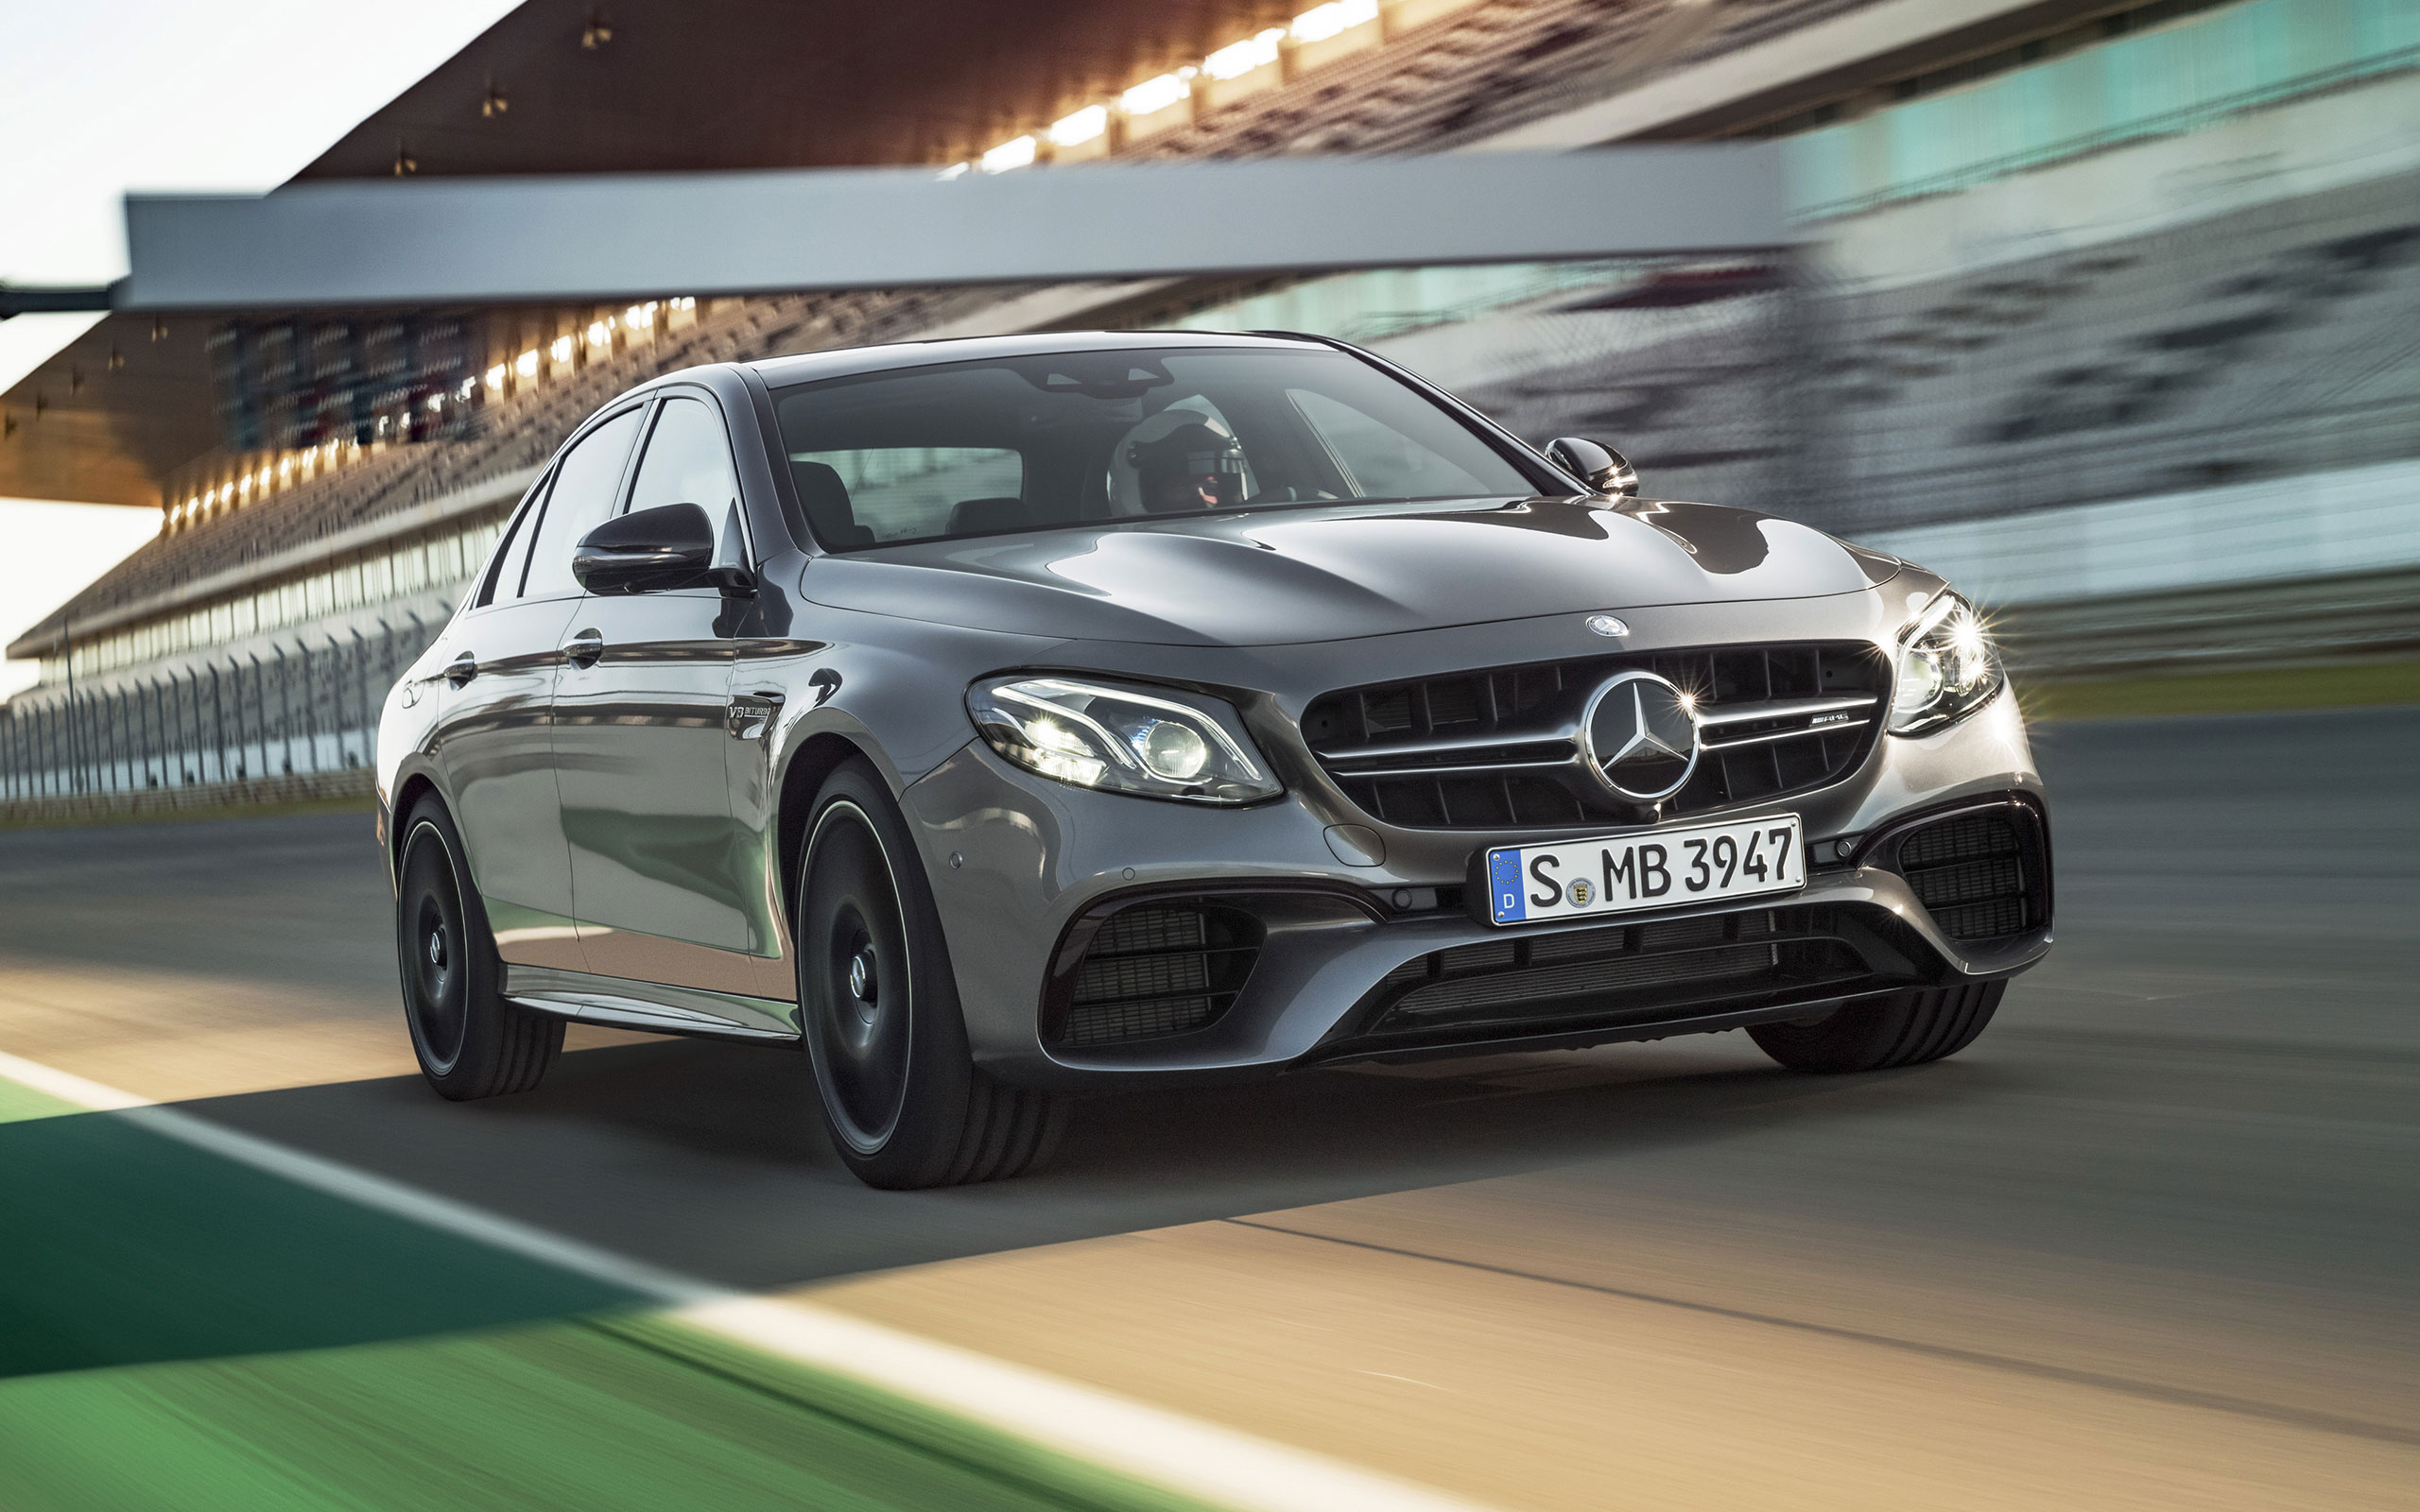 The All New Mercedes Amg E63 S Sedan